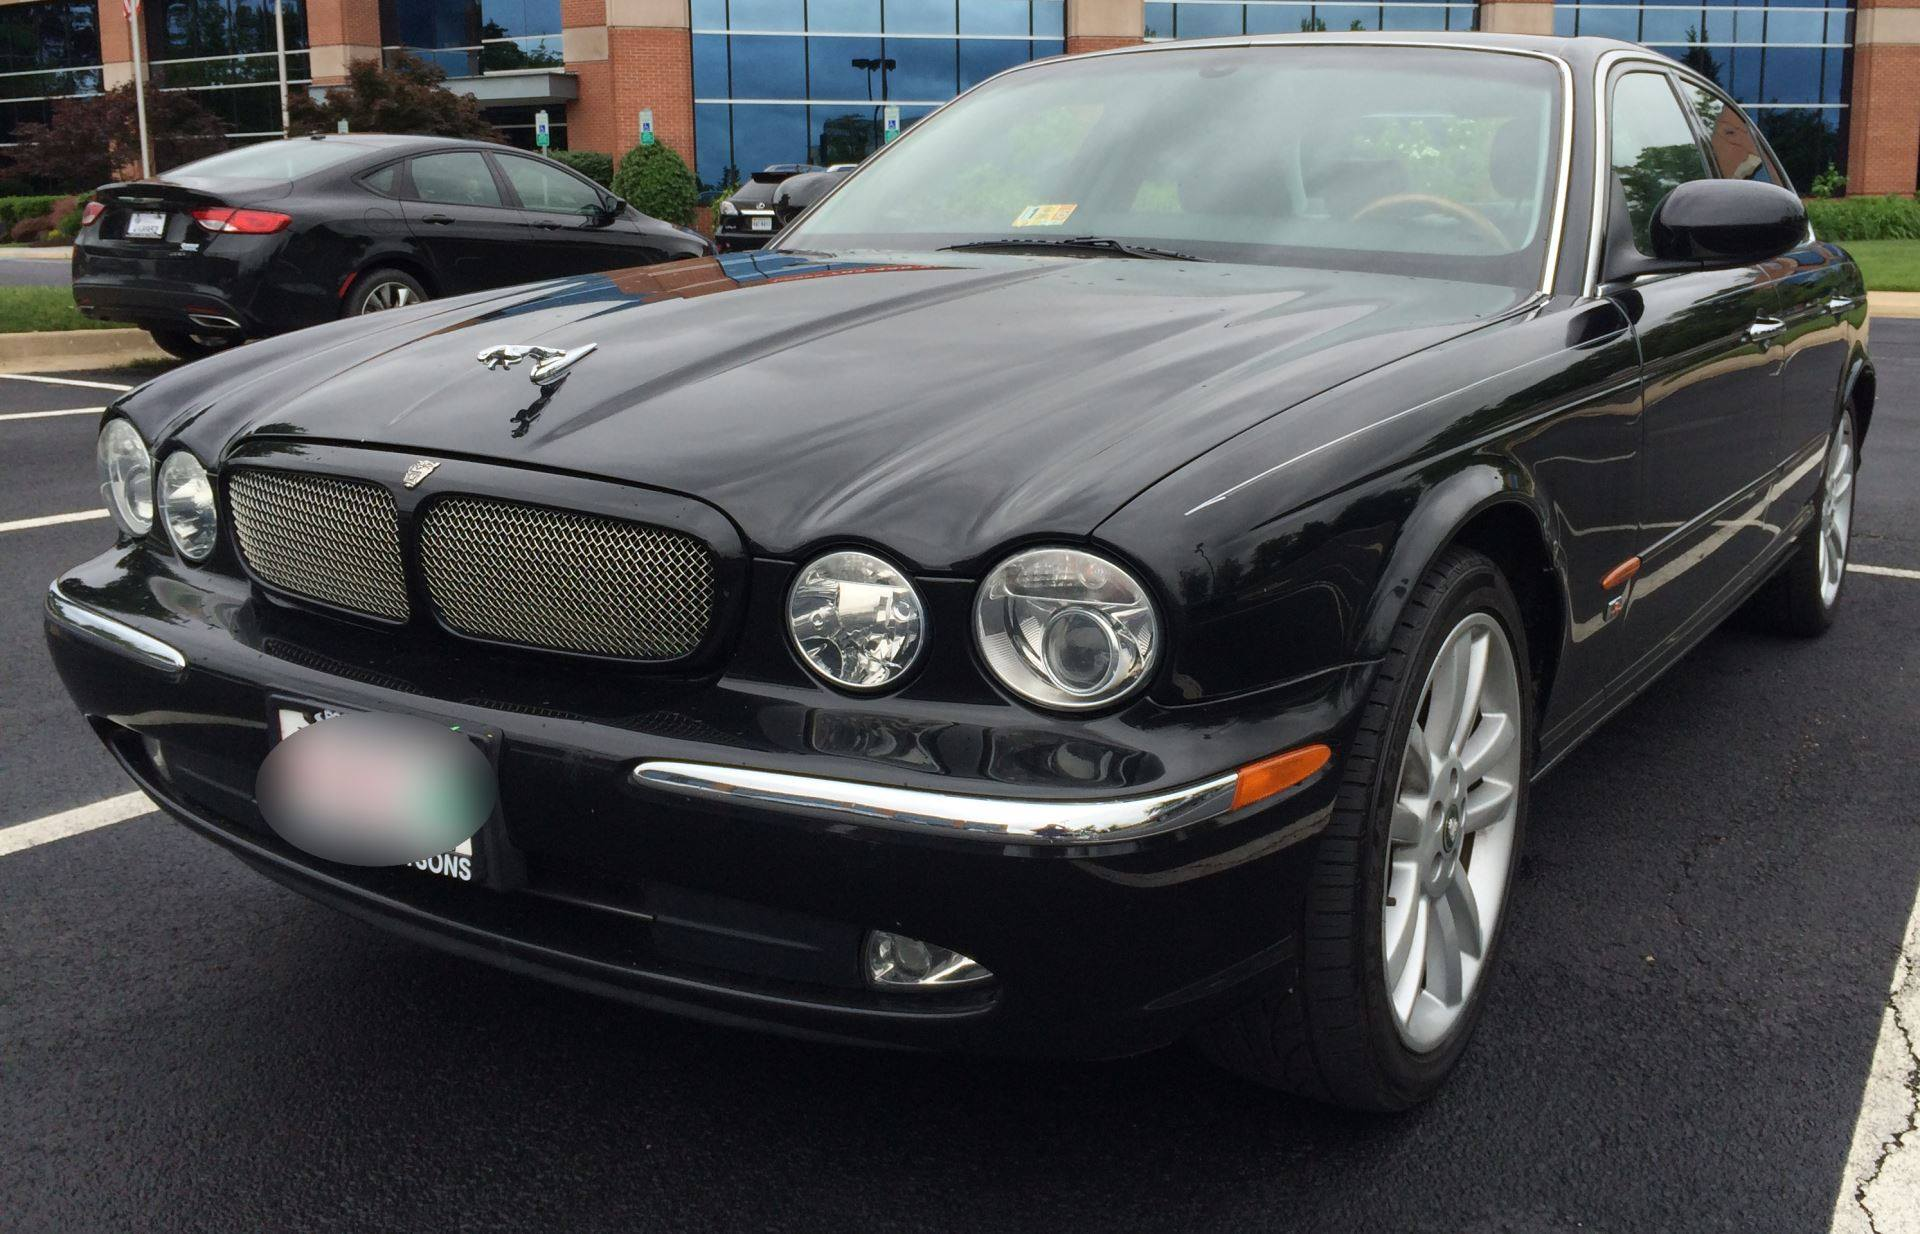 hight resolution of 2004 xjr with only 74 000 miles a unicorn 10428148 10204236849745404 3993366022957364015 o jpg